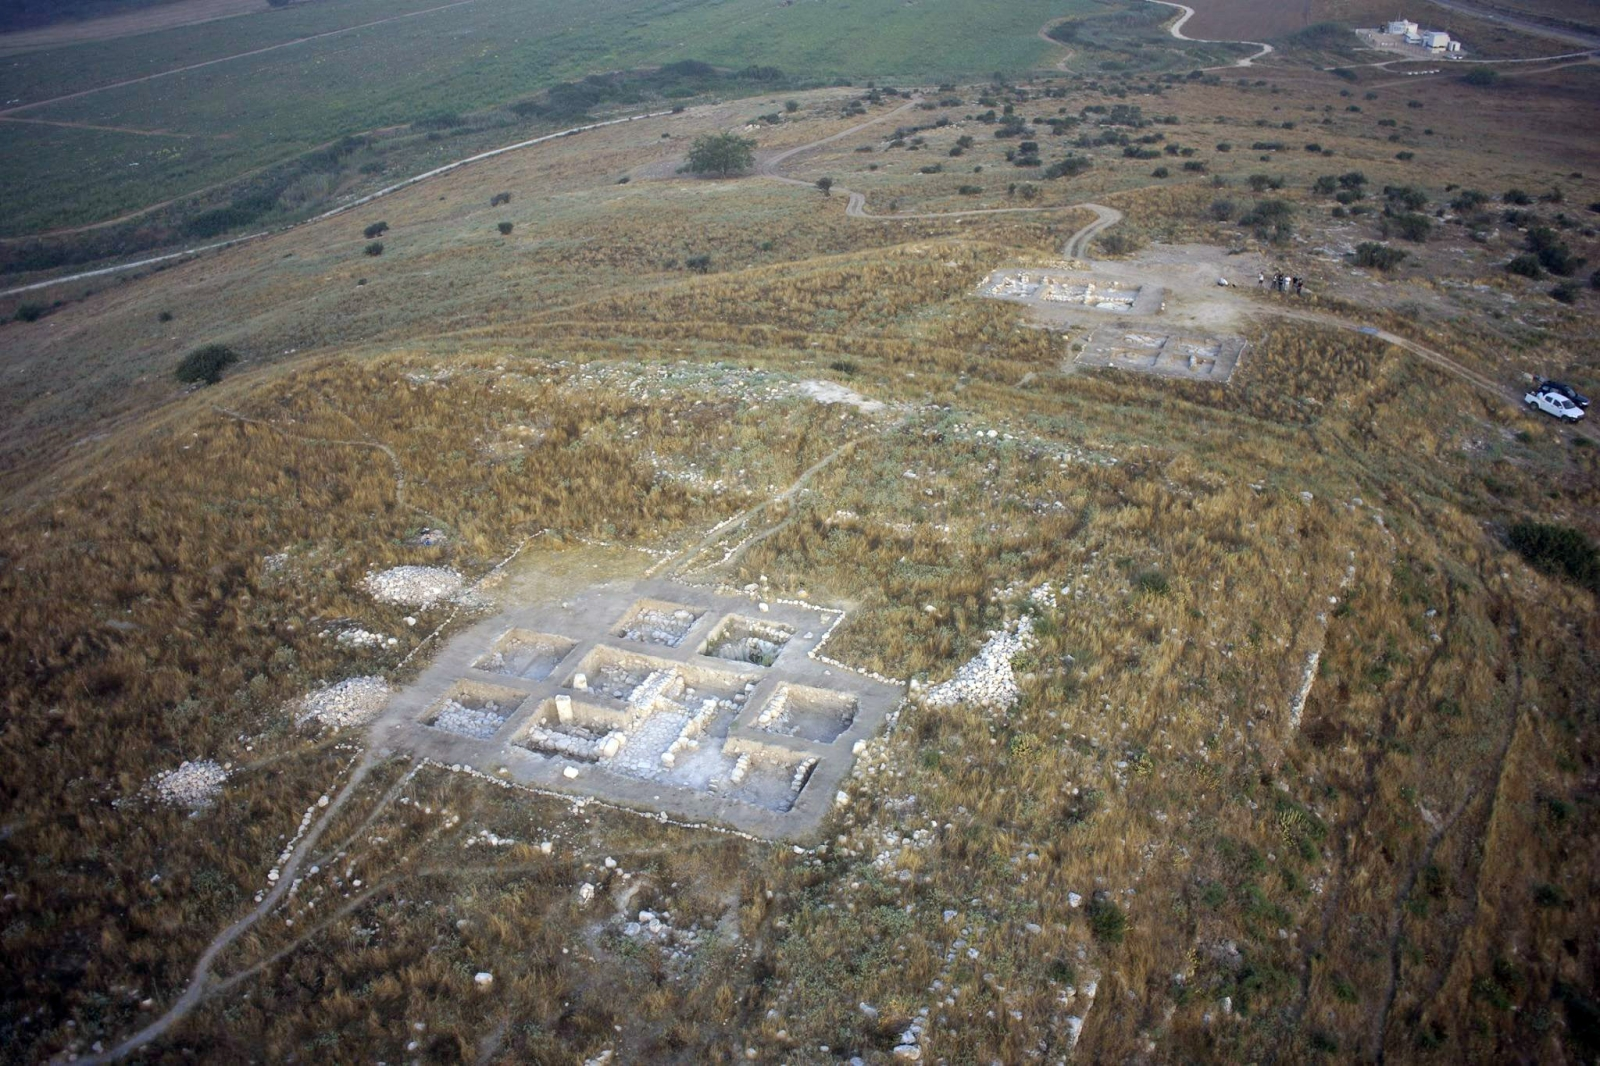 The site of Tel Burna in Shephelah, south-central Israel. Several different excavations are going on and archaeological remains are being found from many different periods